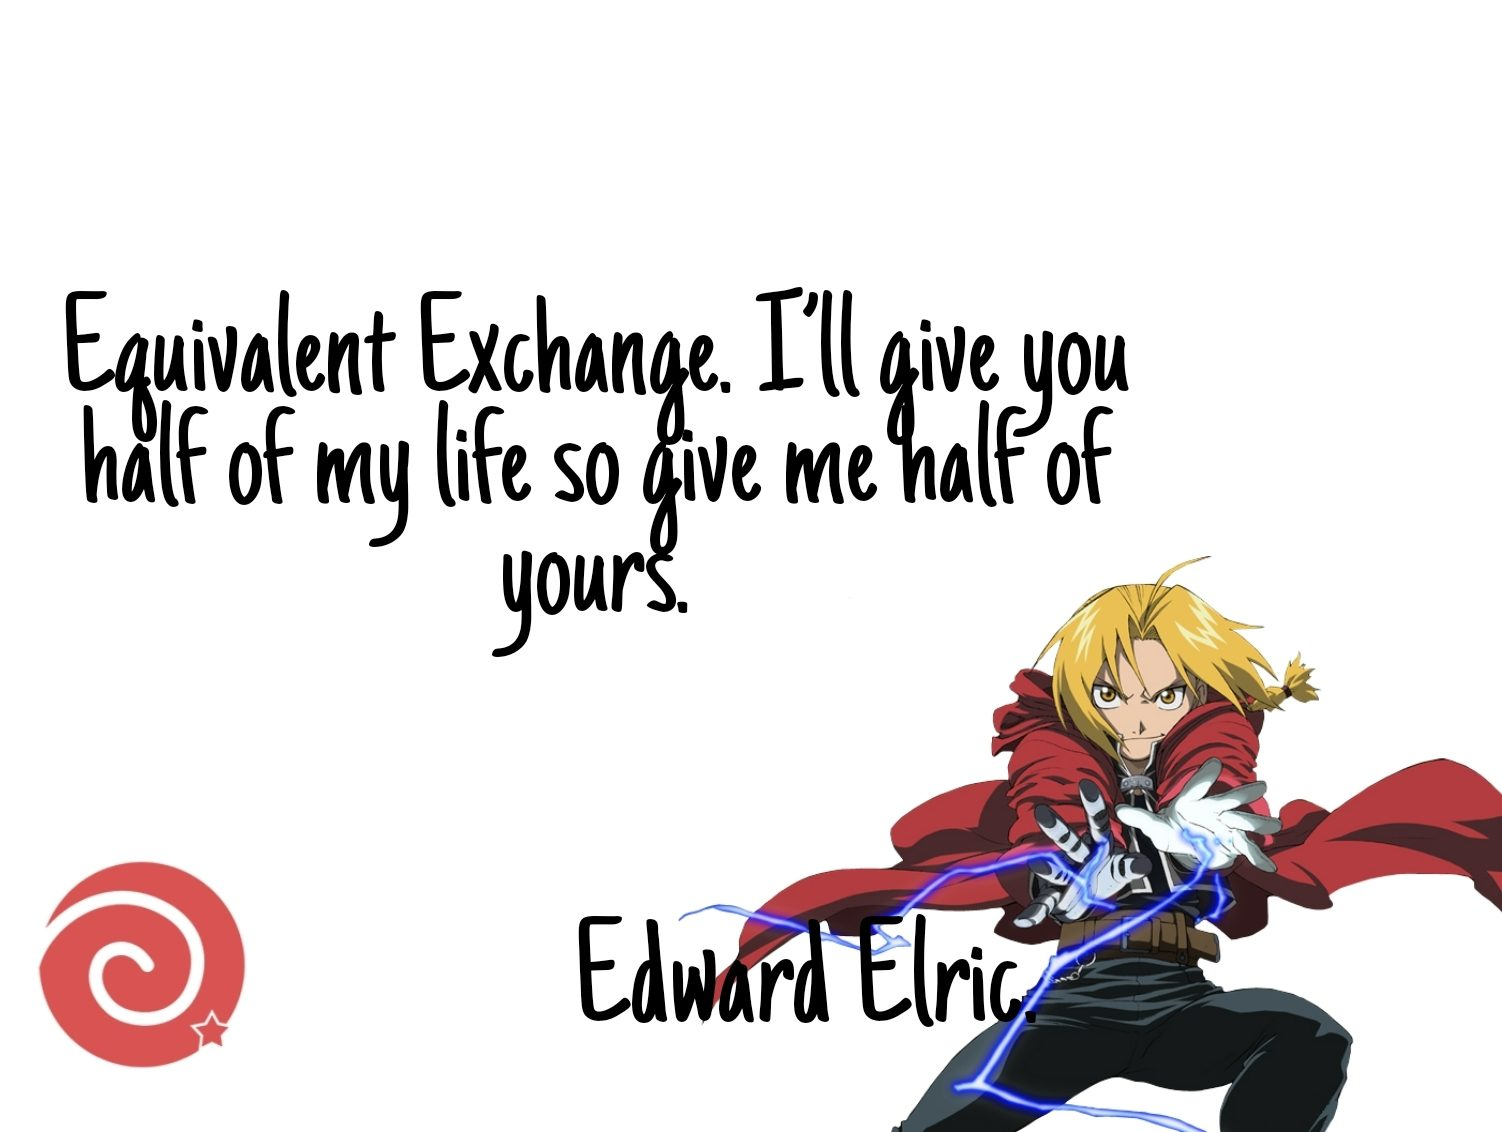 Edward Elric Quotes fma